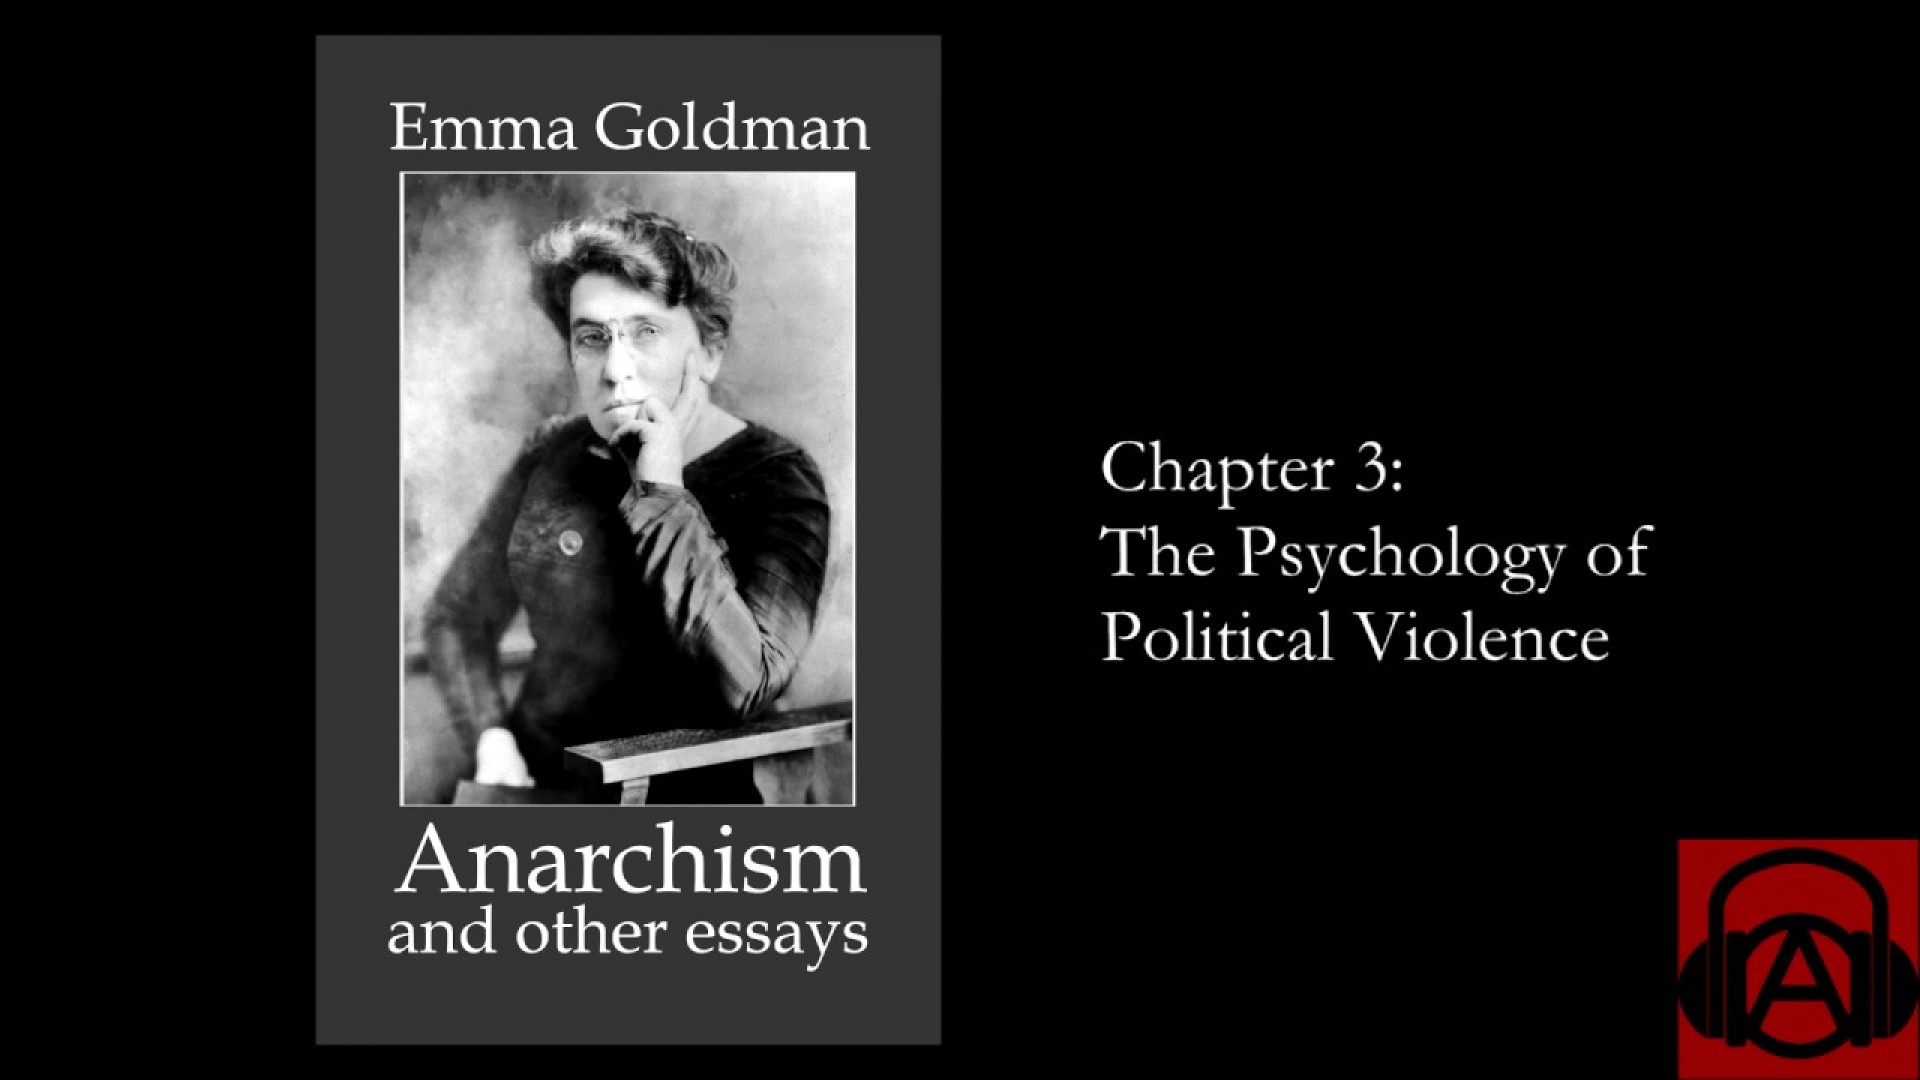 016 Anarchism And Other Essays Essay Example Incredible Emma Goldman Summary Mla Citation 1920